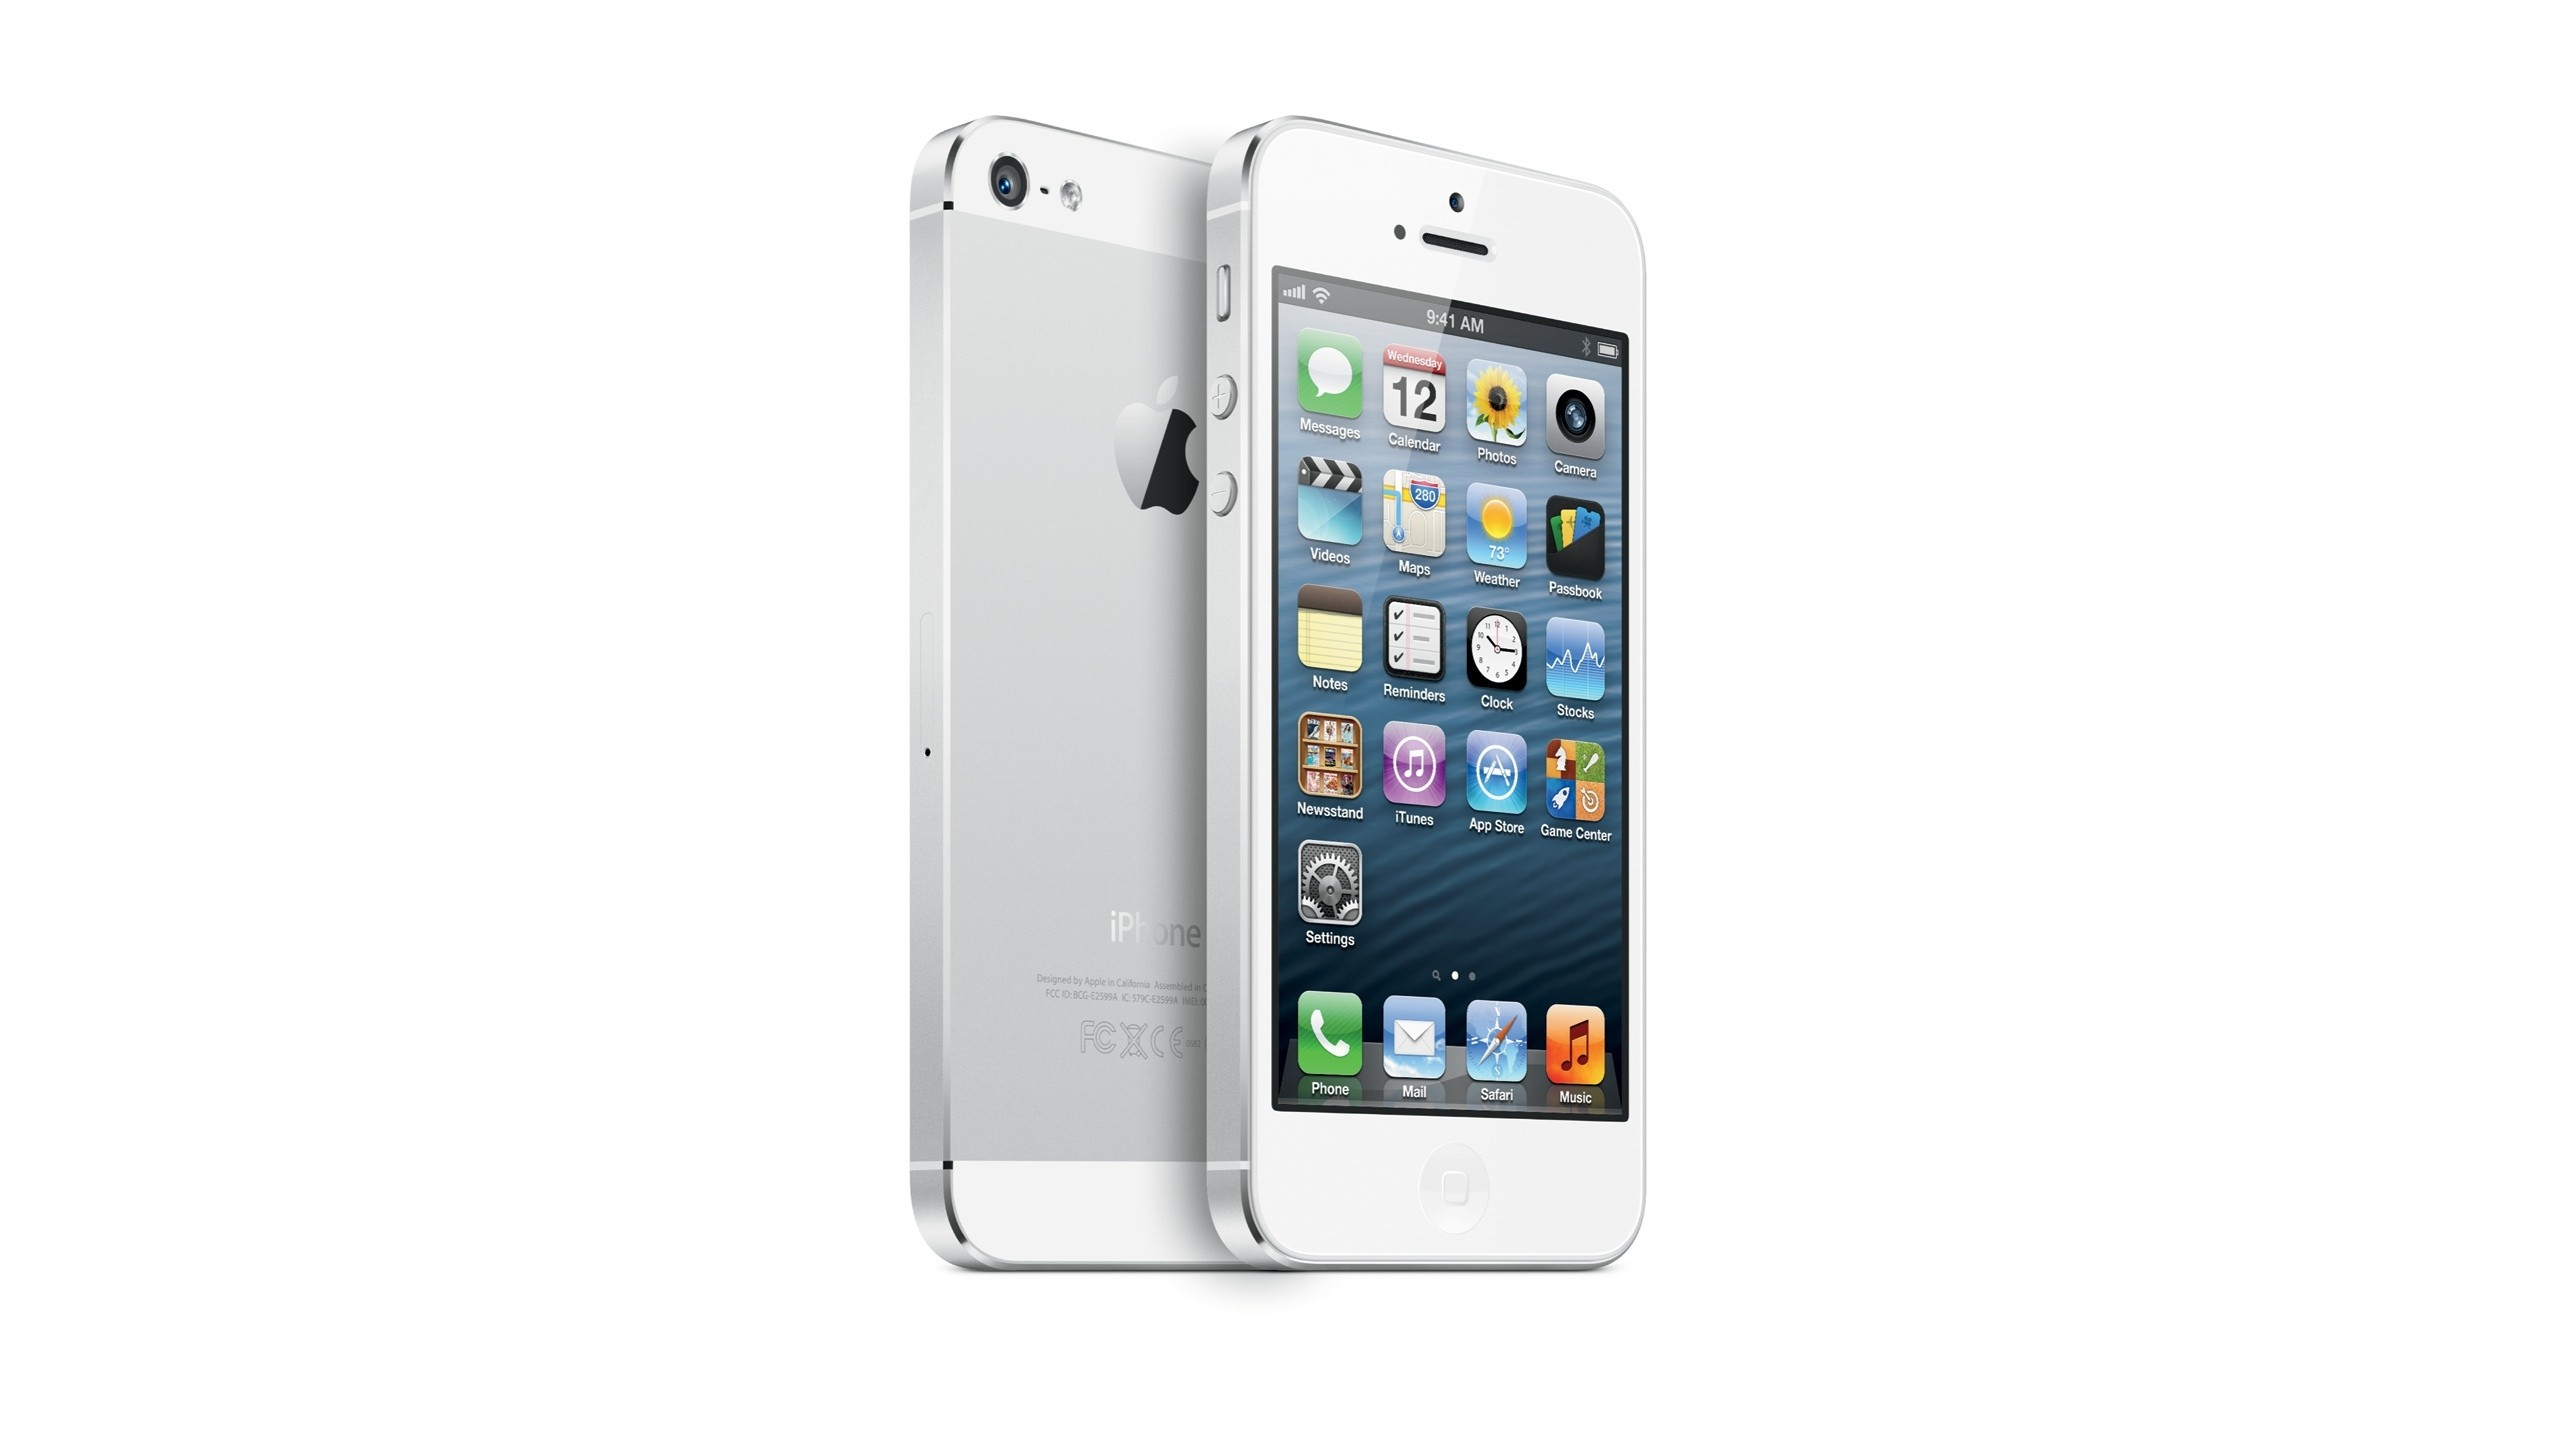 Wallpaper iphone 5, apple, mobile phone, white, model, touch  screen